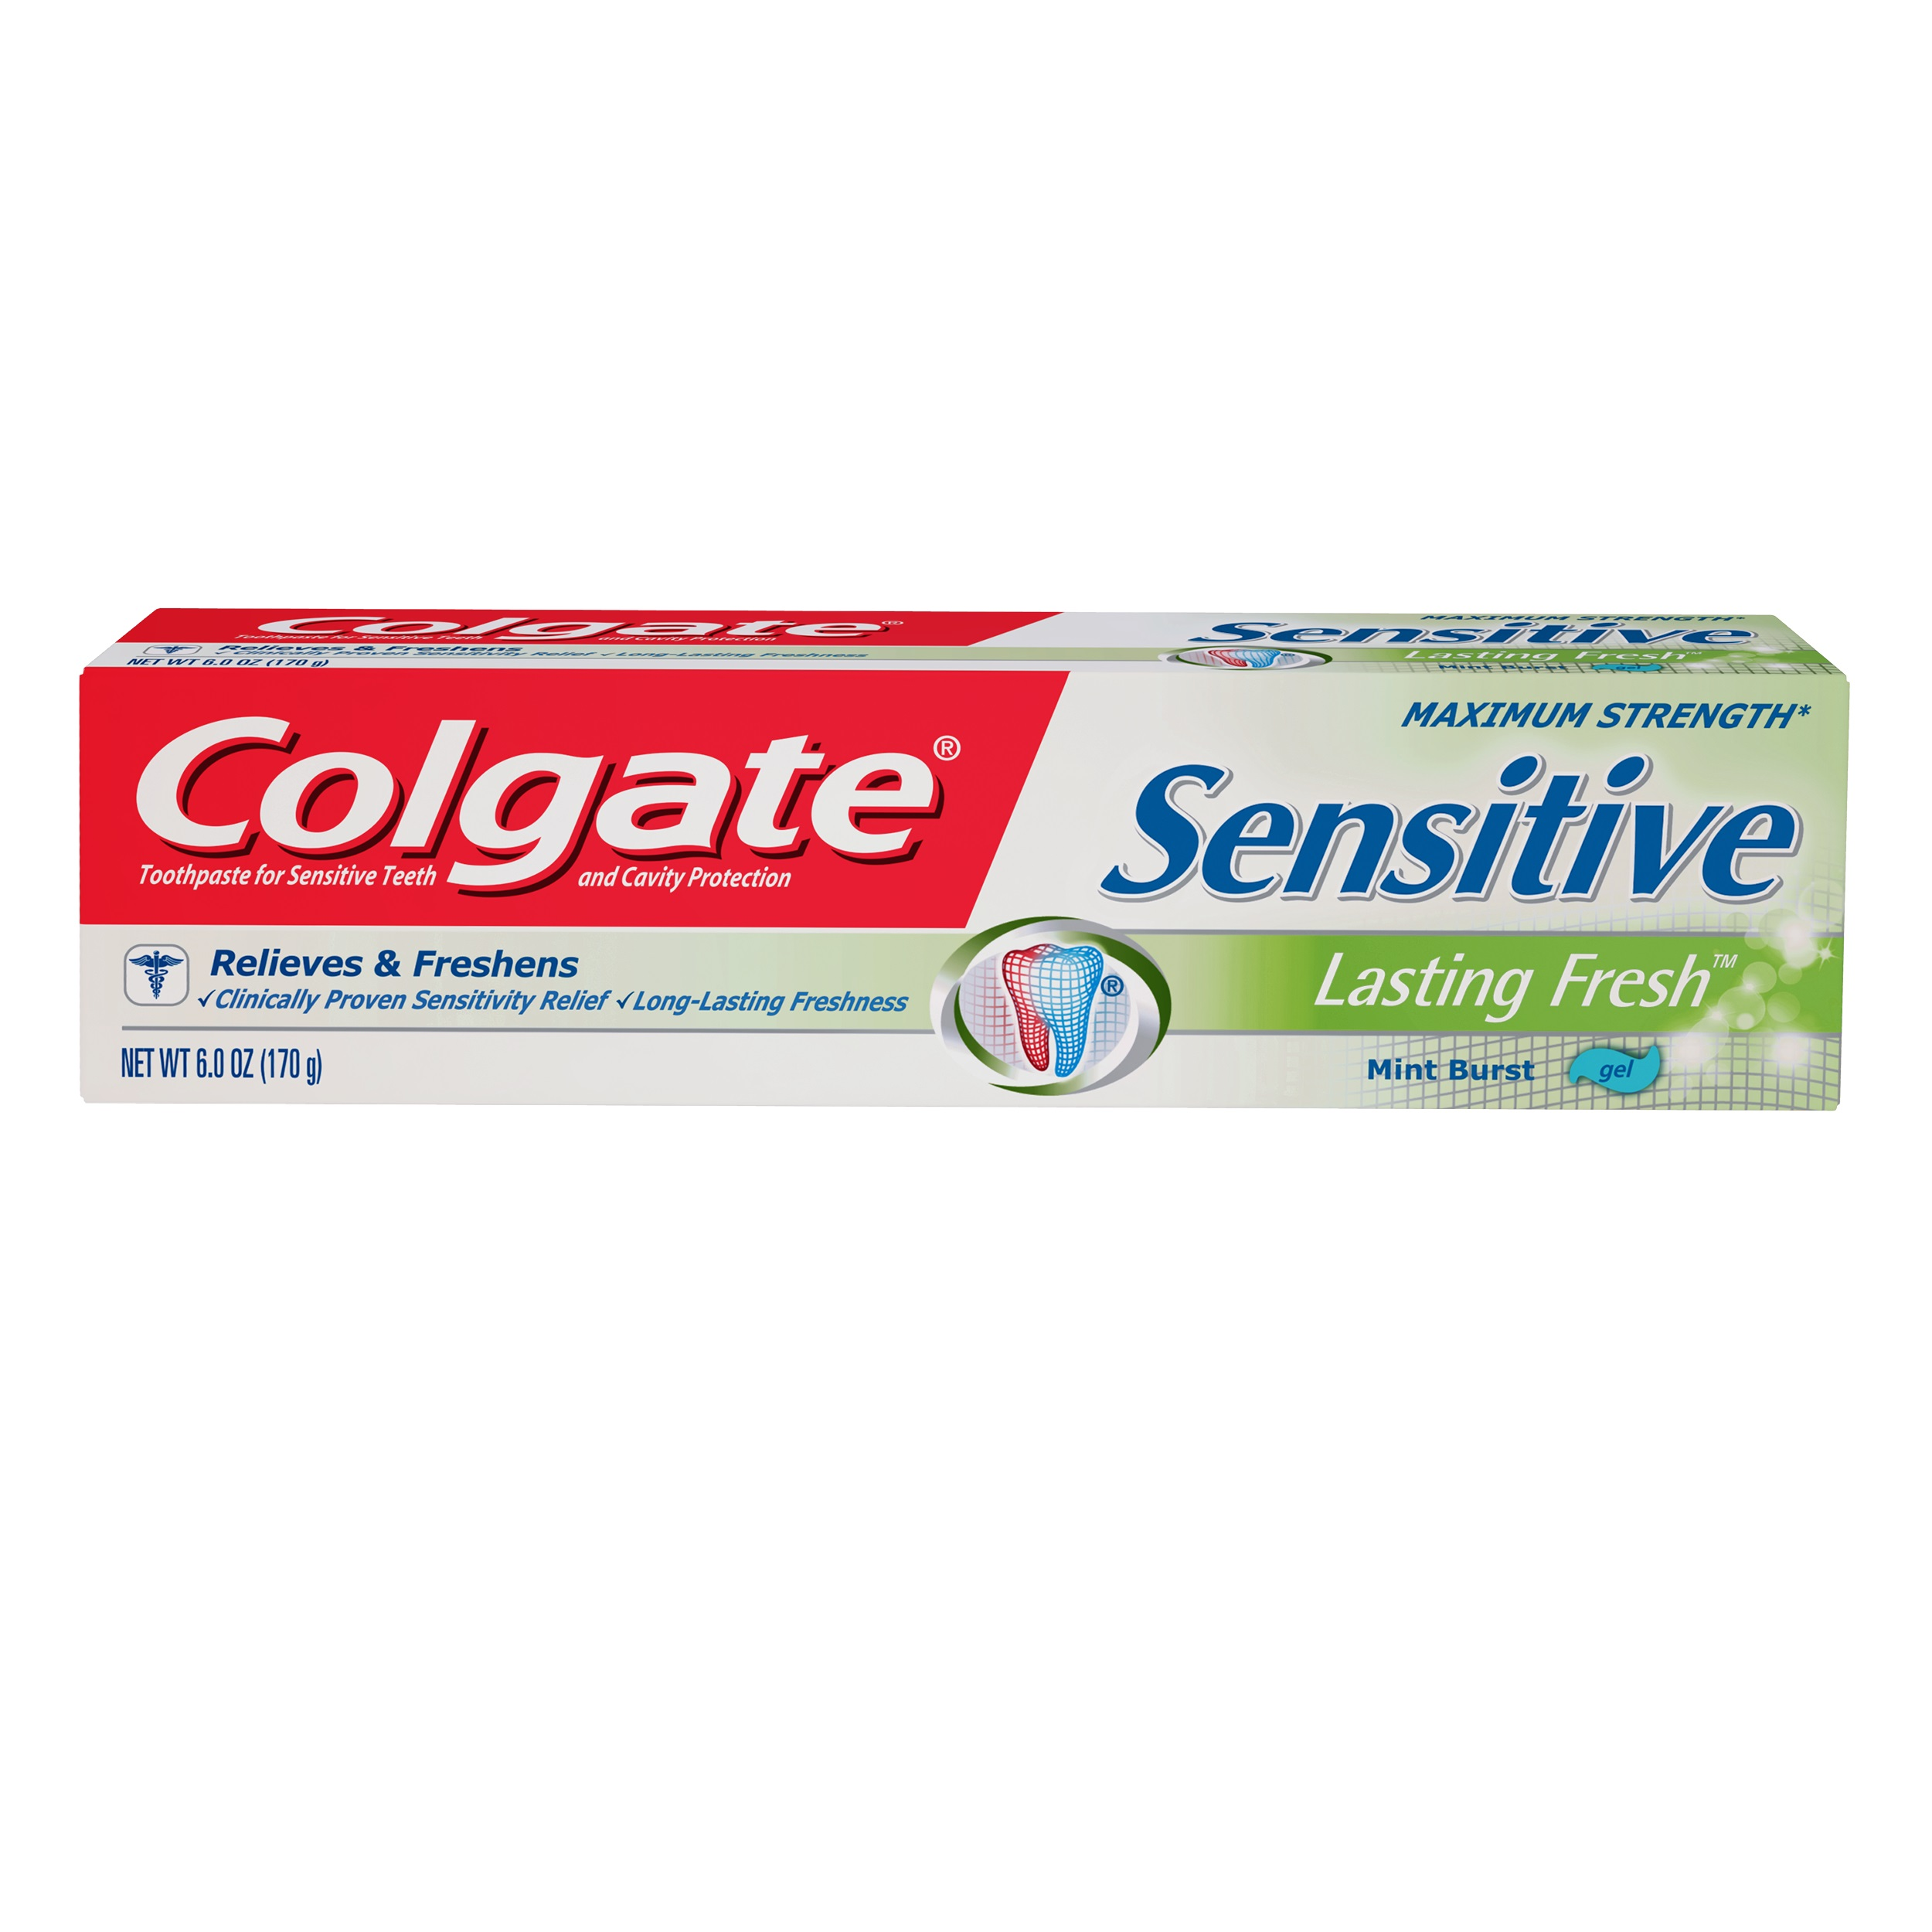 Colgate Sensitive Toothpaste, Lasting Fresh, 6 ounce